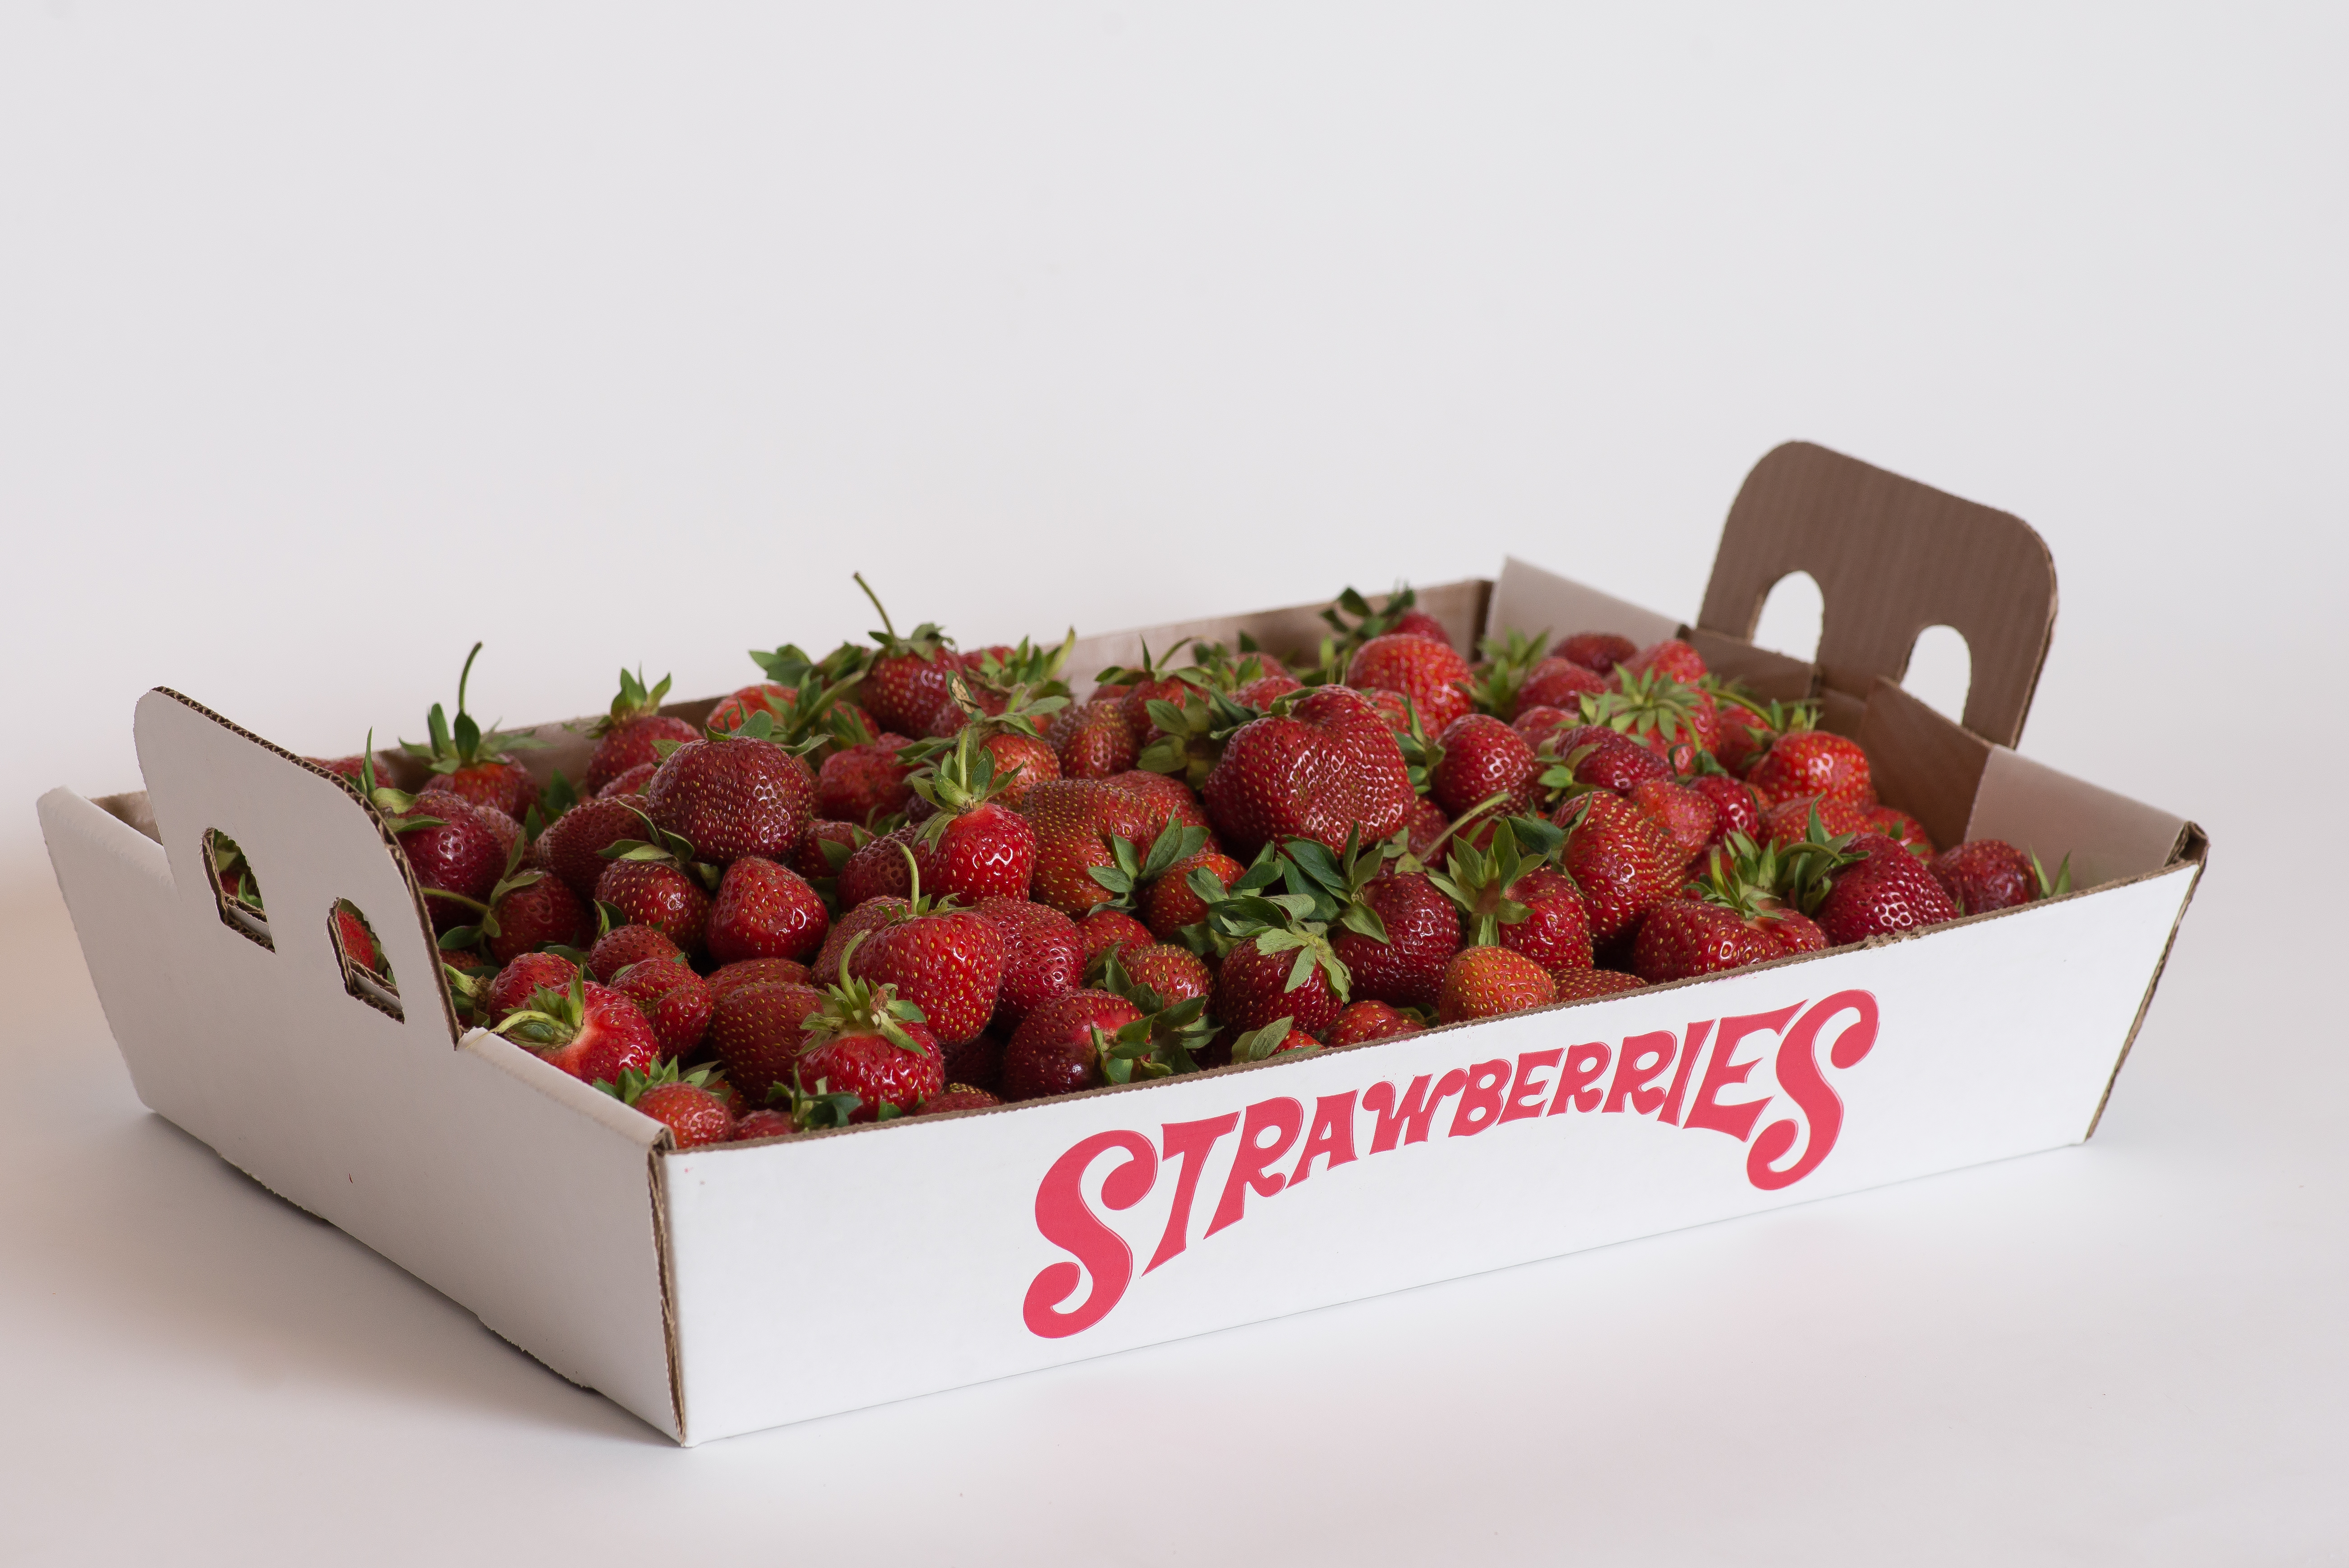 strawberries-8819